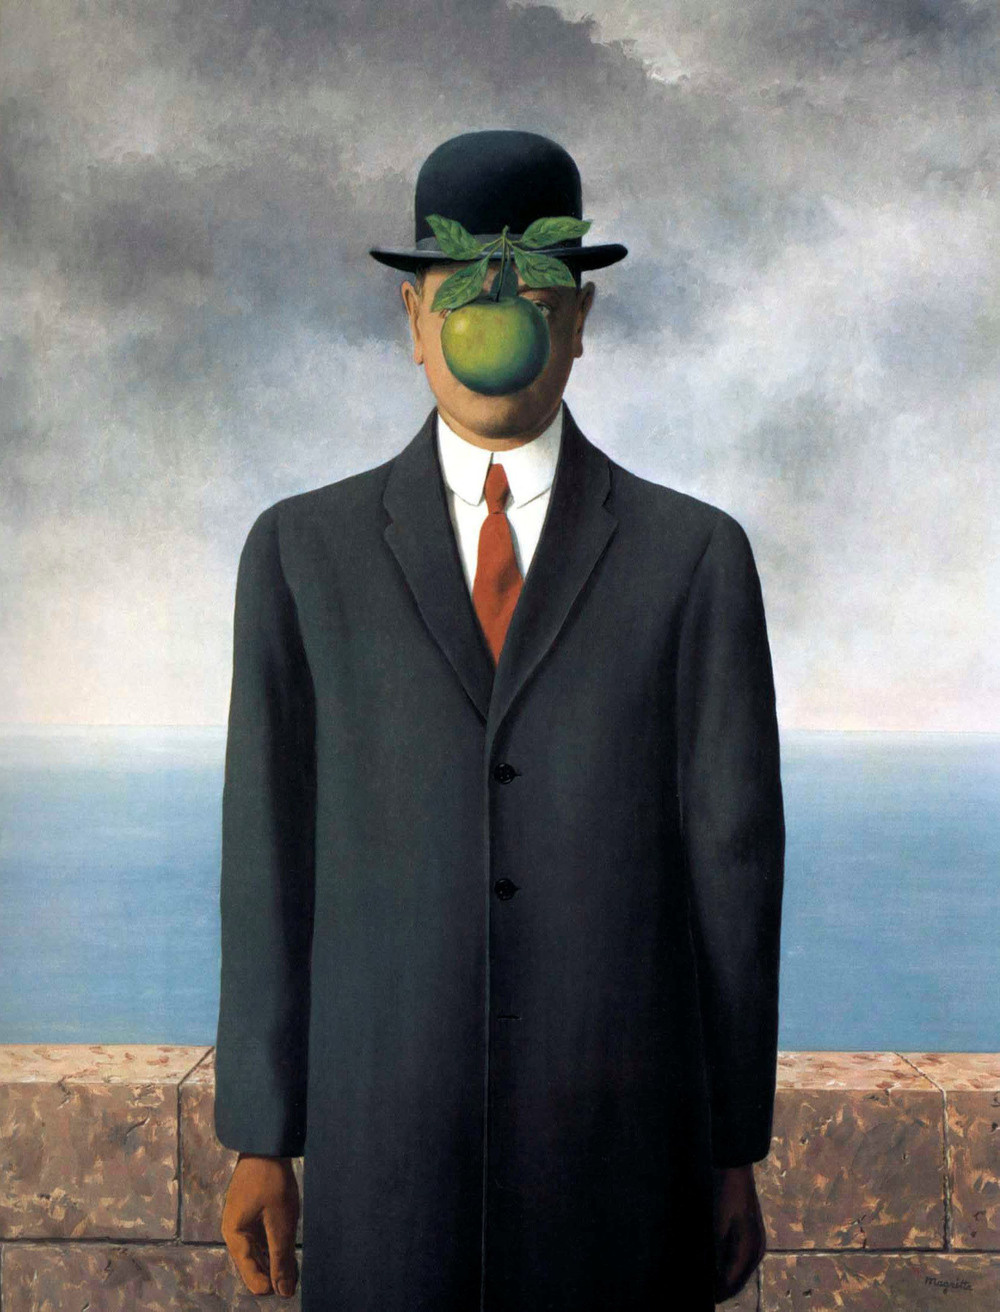 René Magritte. The son of man